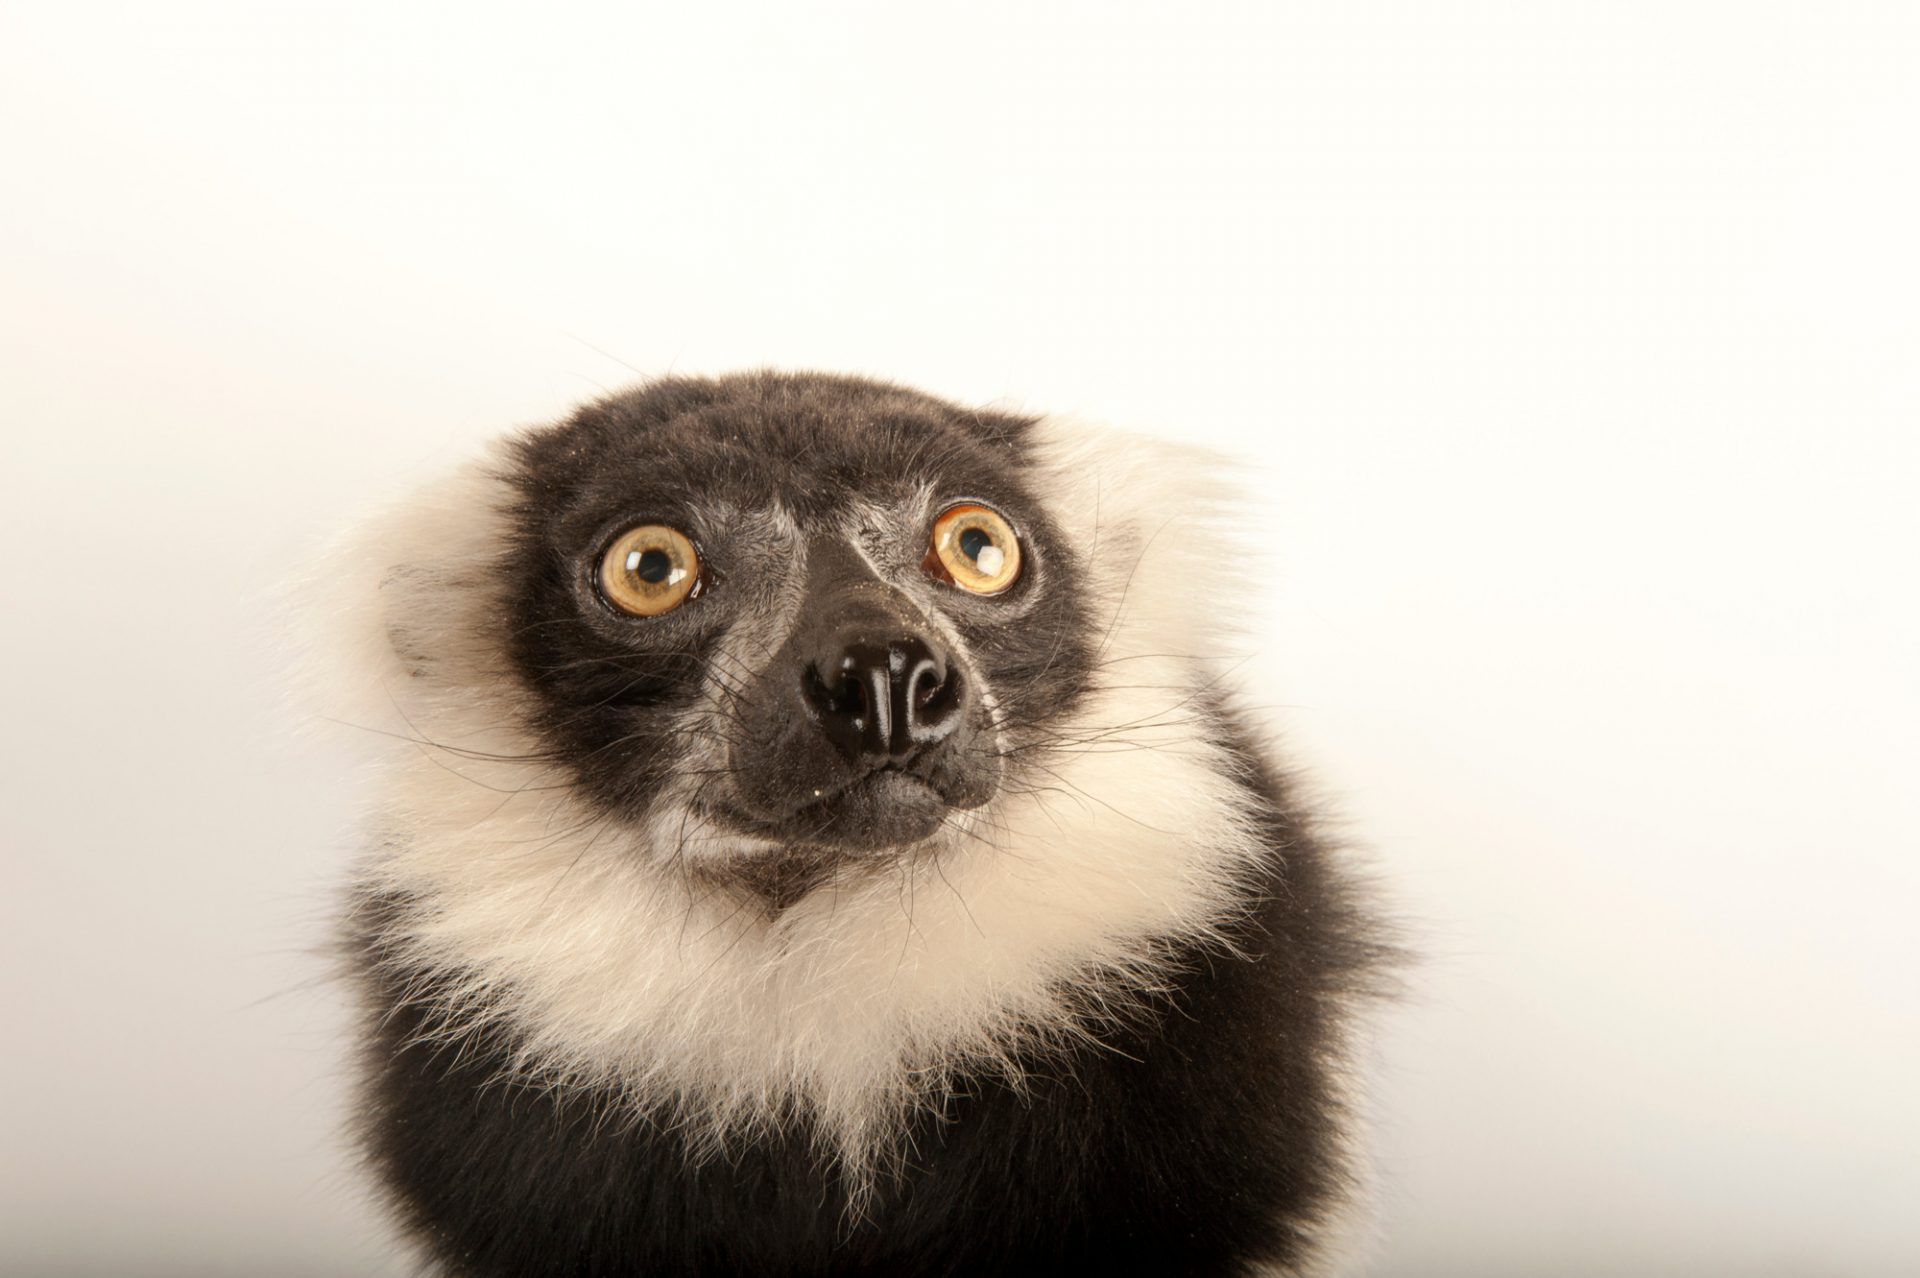 A critically endangered black and white ruffed lemur (Varecia variegata) at the Lincoln Children's Zoo.